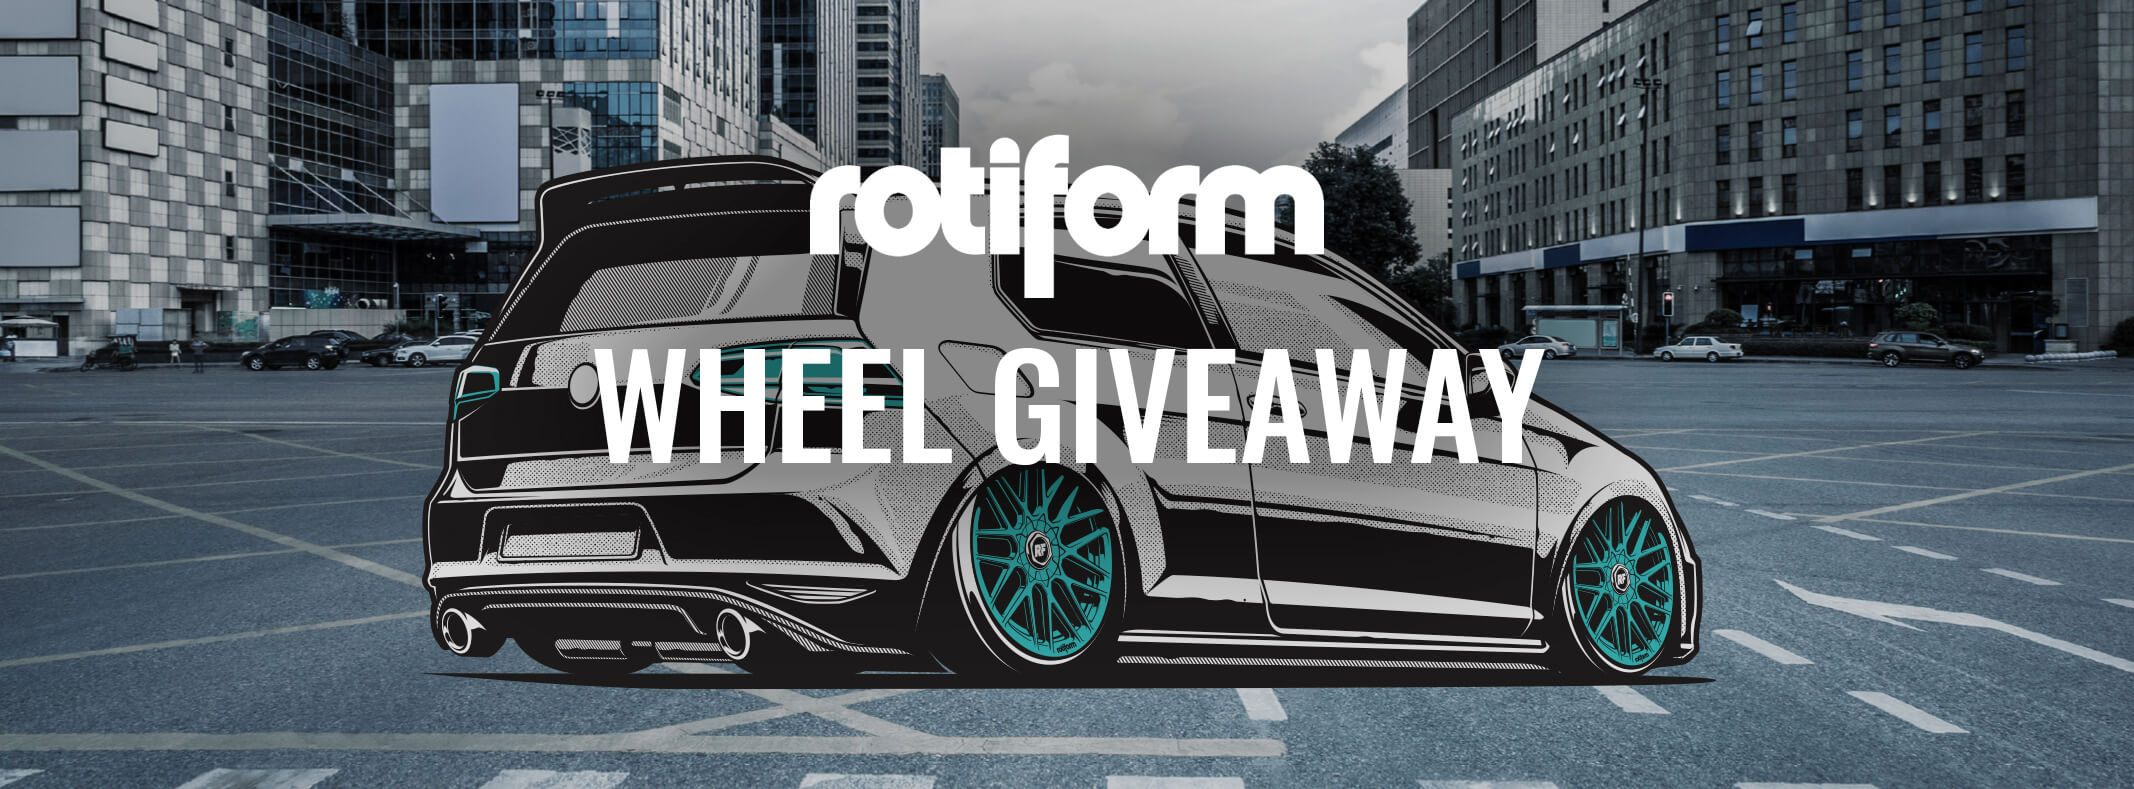 Fitment Industries & Rotiform Wheels Giveaway